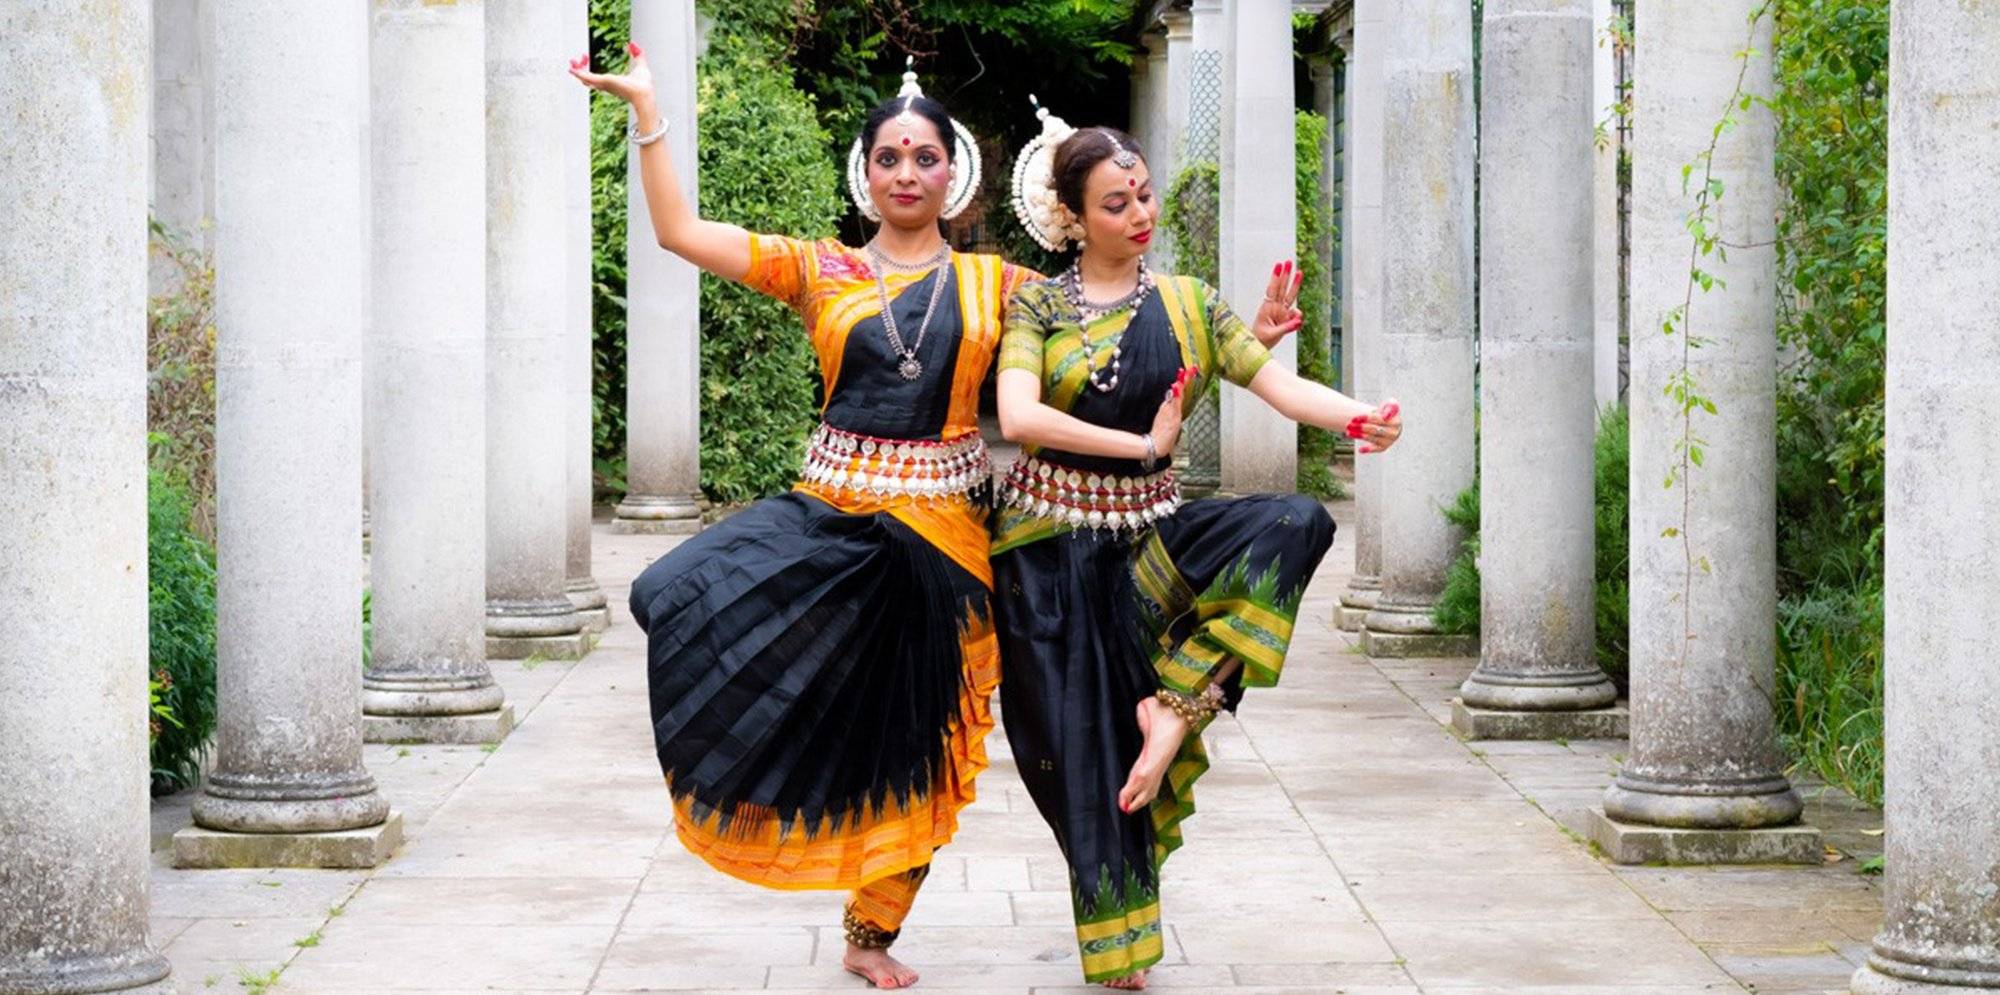 Two dancers strike different poses, they're wearig traditional Indian dance dress